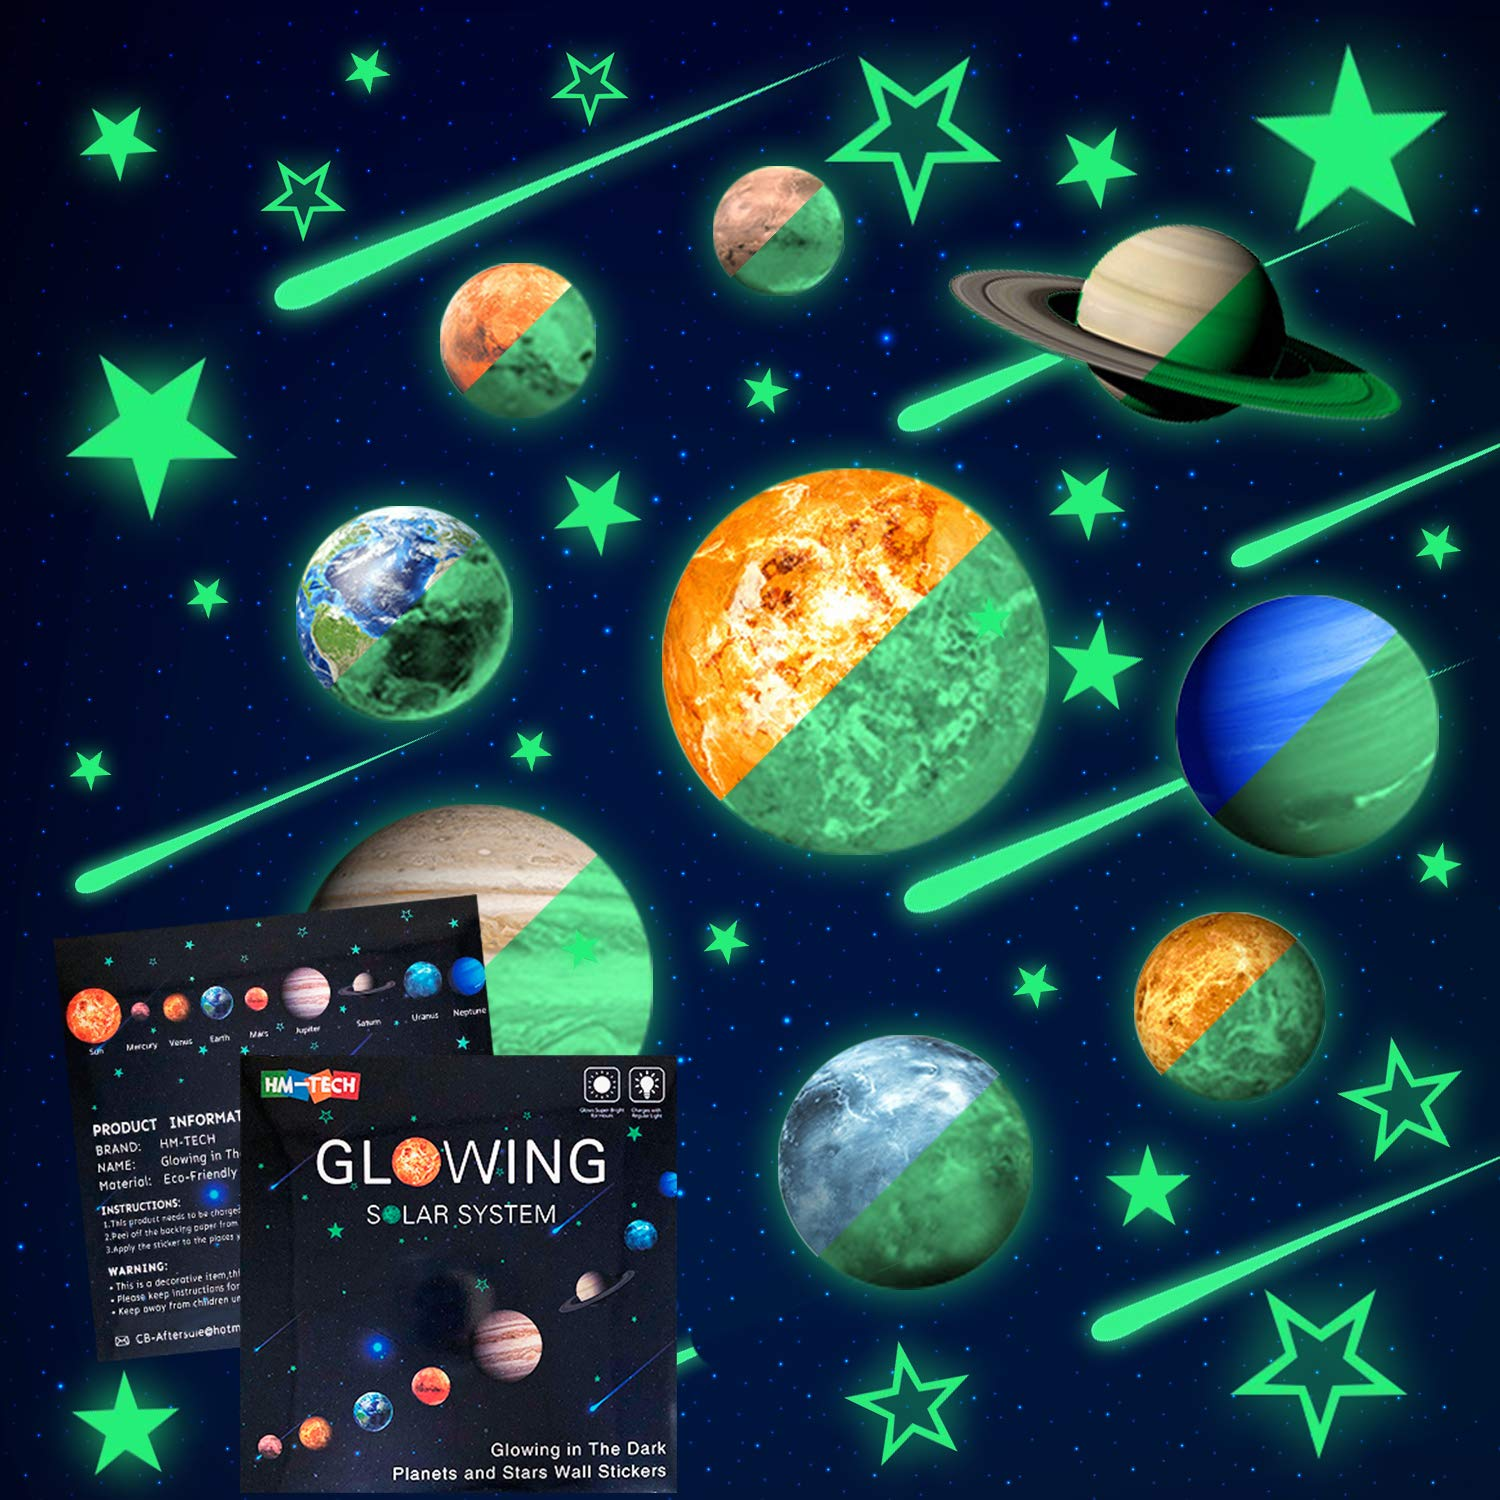 Glow in The Dark Stars and Planets, Bright Solar System Wall Stickers -Sun Earth Mars,Stars,Shooting Stars and so on,9 Glowing Ceiling Decals for Bedroom Living Room,Shining Space Decoration for Kids by HM-TECH